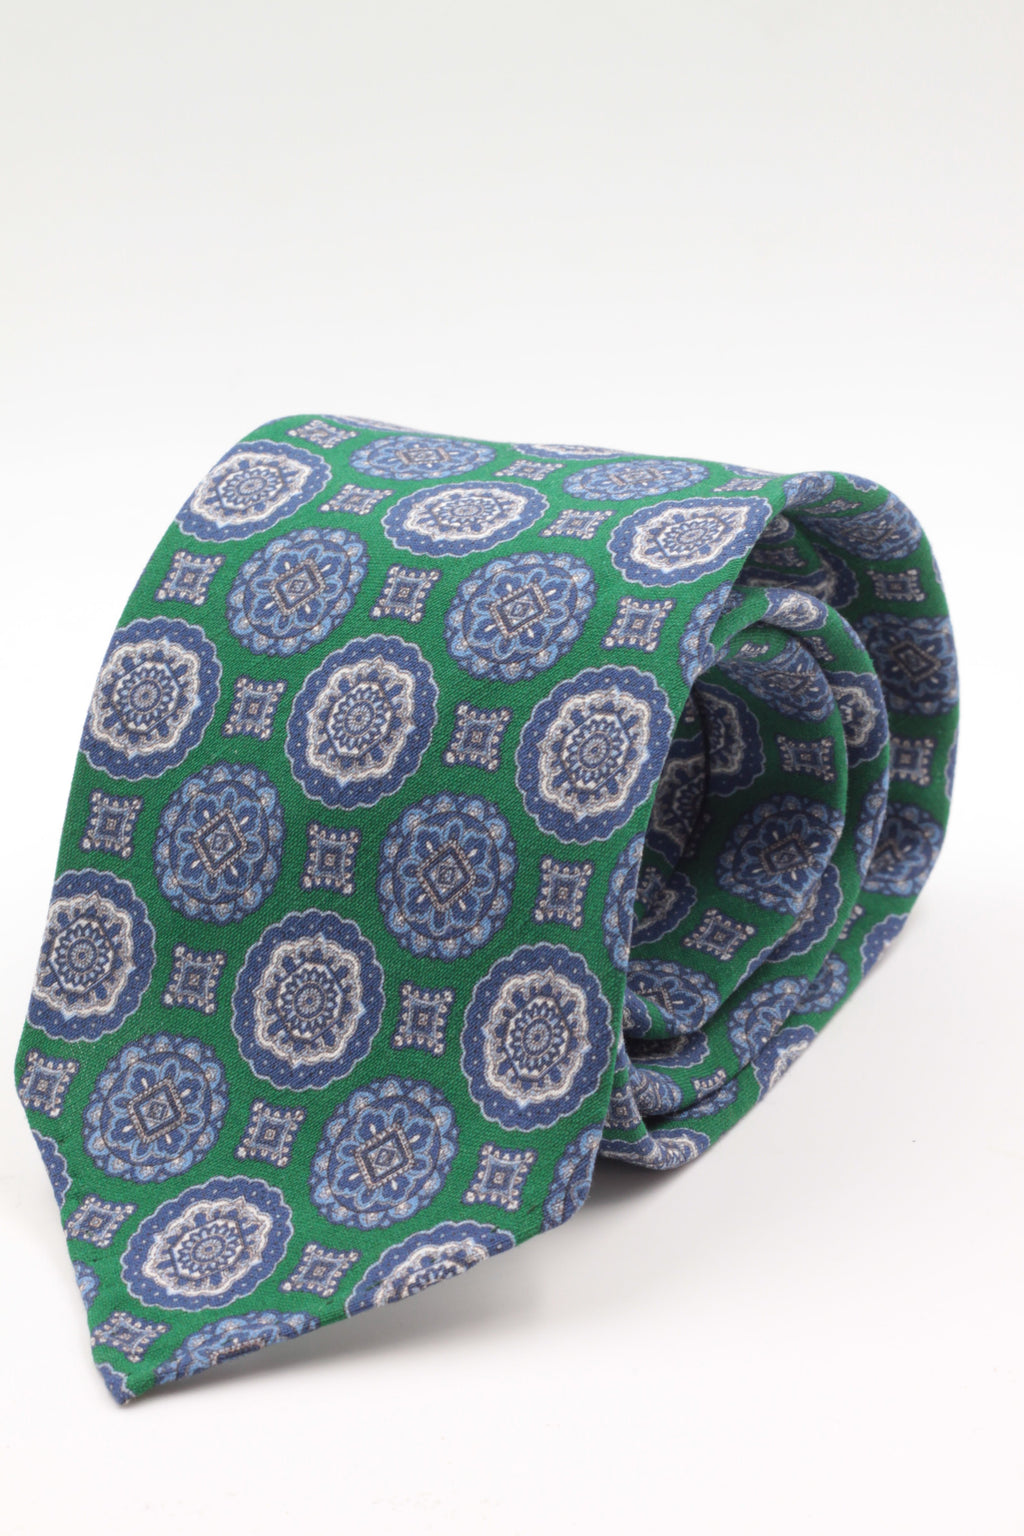 100% Printed Madder Silk  Italian fabric Unlined Emerald green, blue and grey medallions unlined tie Handmade in Italy 8 cm x 150 cm